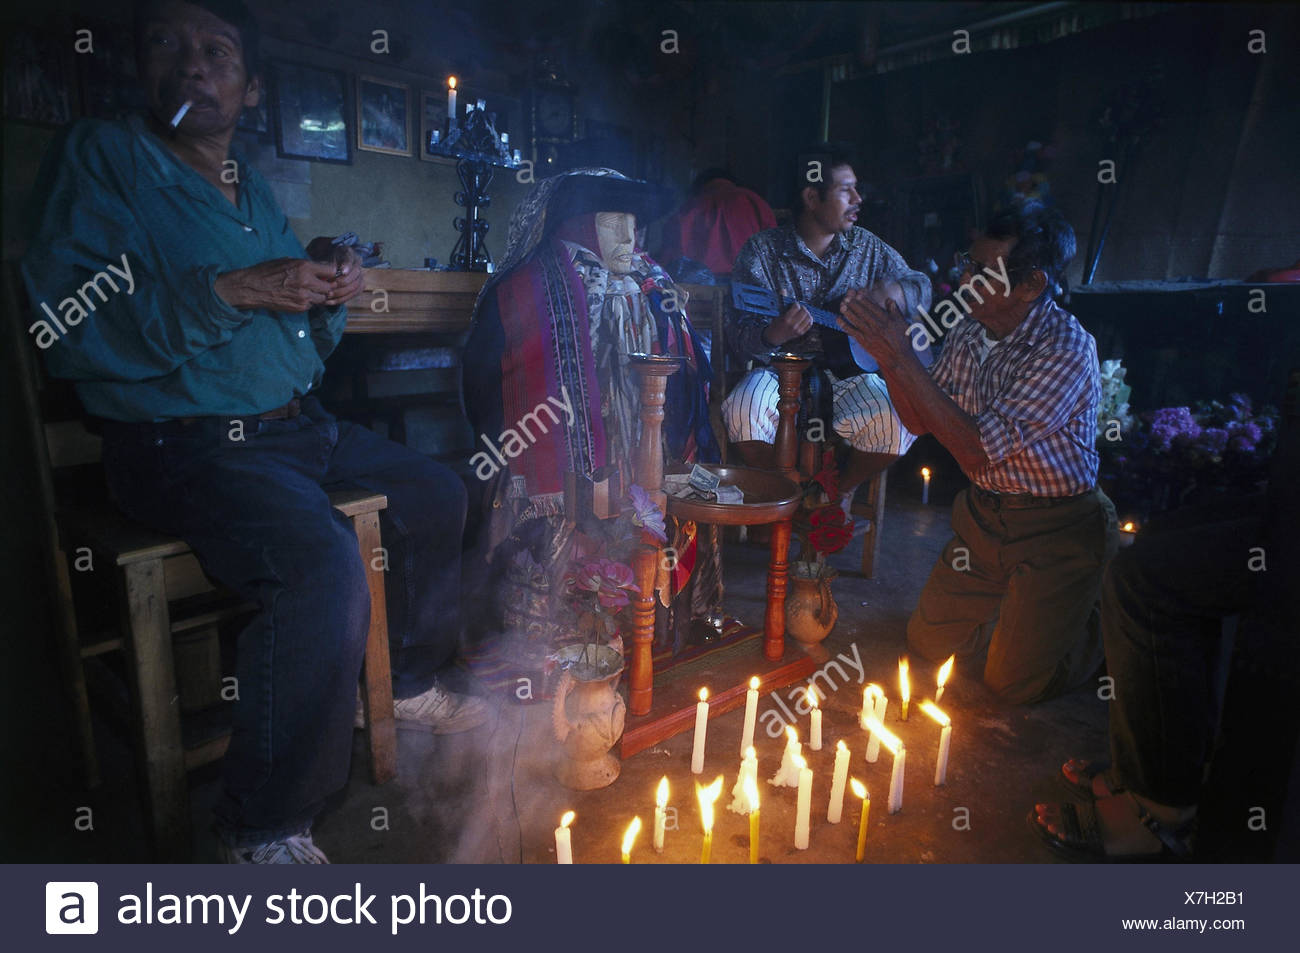 Guatemala, Santiago Atitlan, men, prayer, ceremony men, religion, recite, prayer, skyers, blast, man, guitar, donation, Culte A Maximon, tradition, faith, culture, - Stock Image